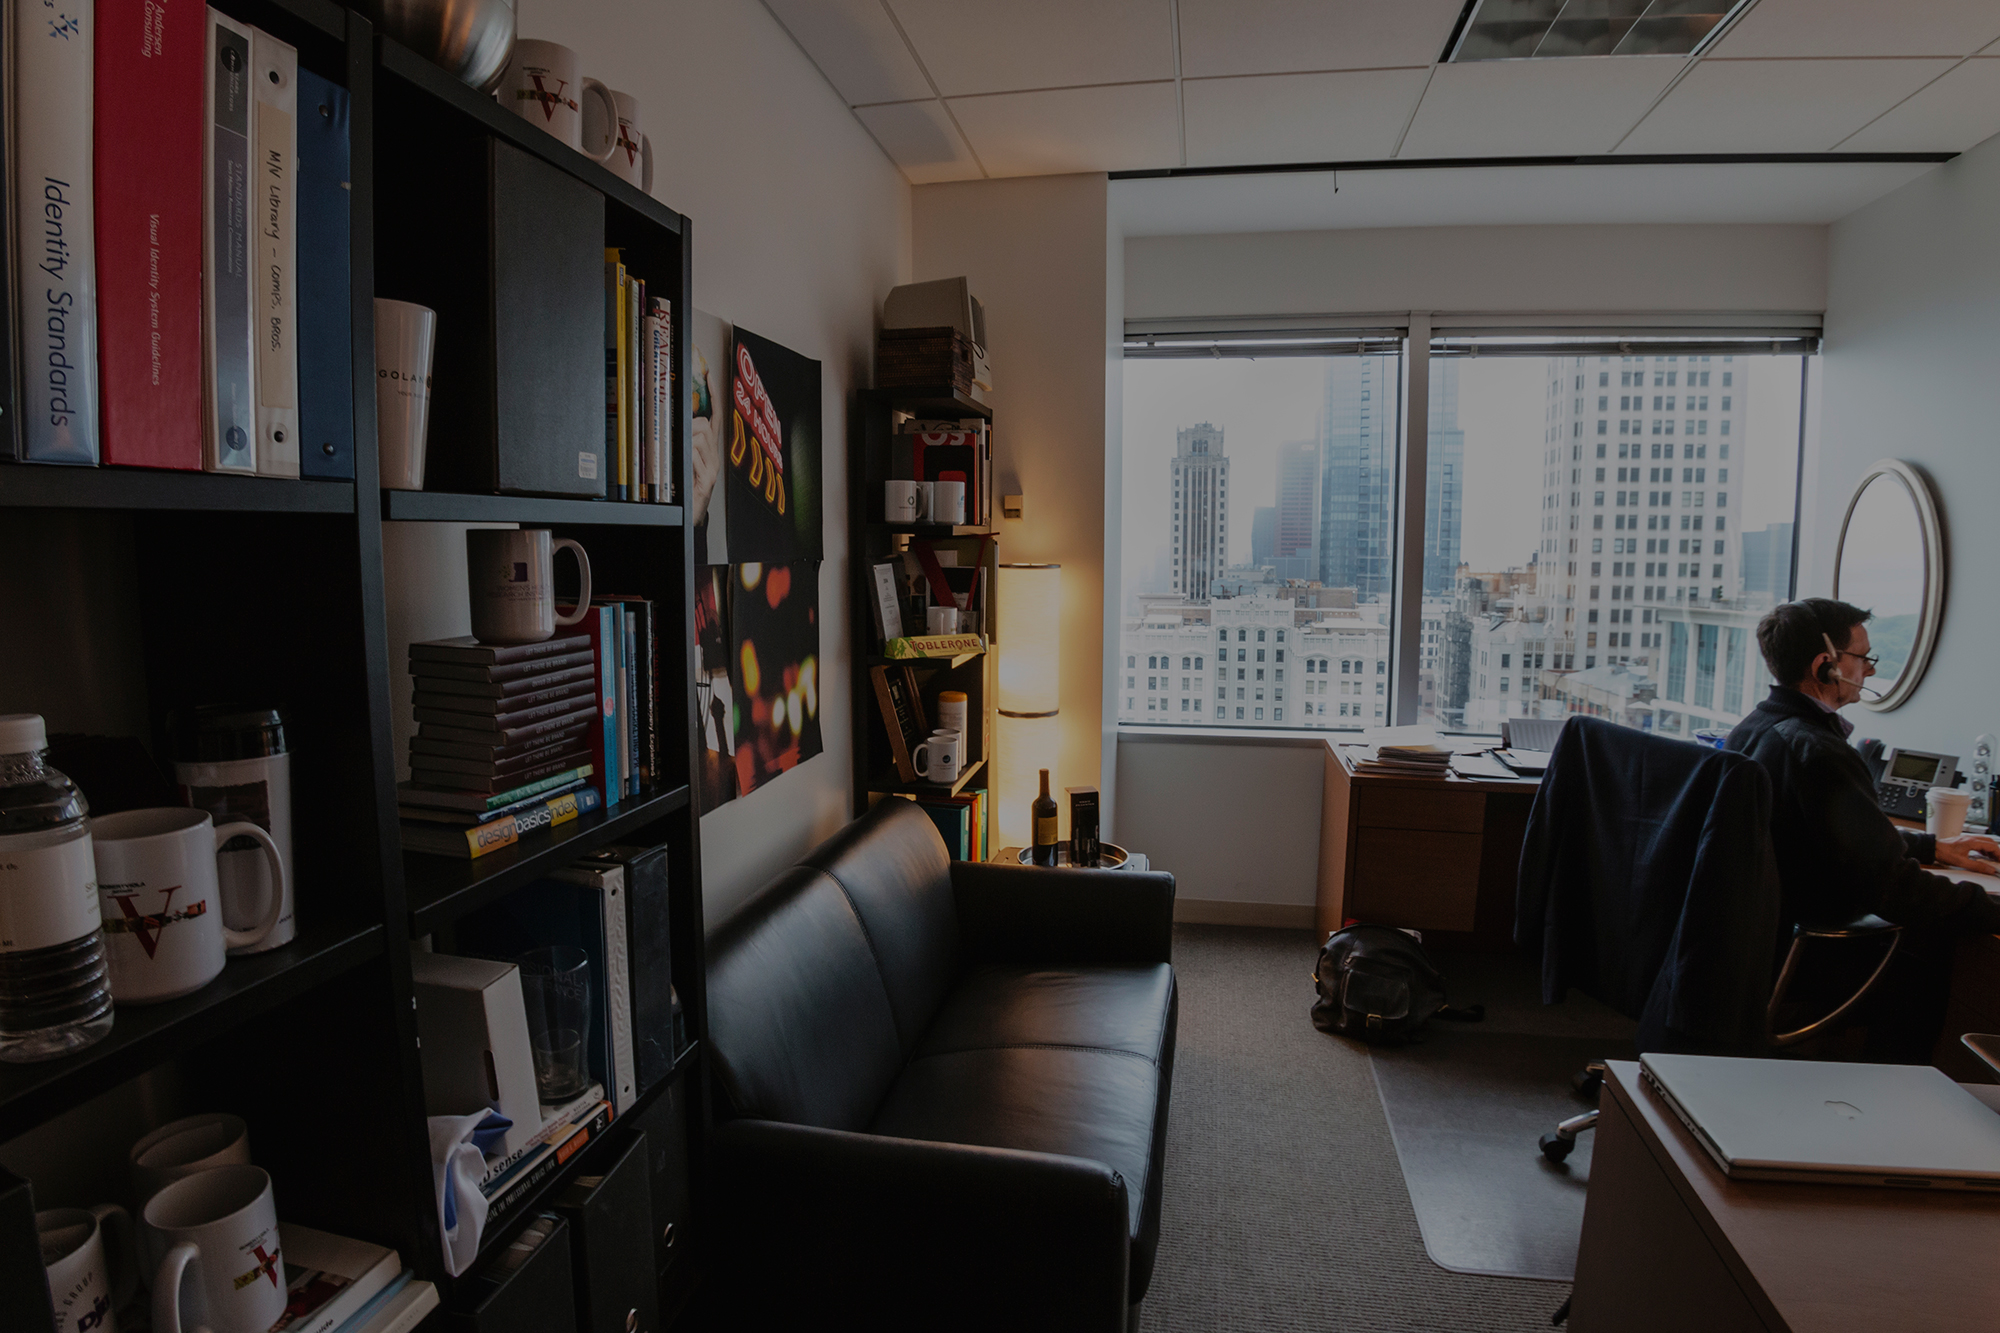 Amata is a Chicago based Commercial Real Estate Firm